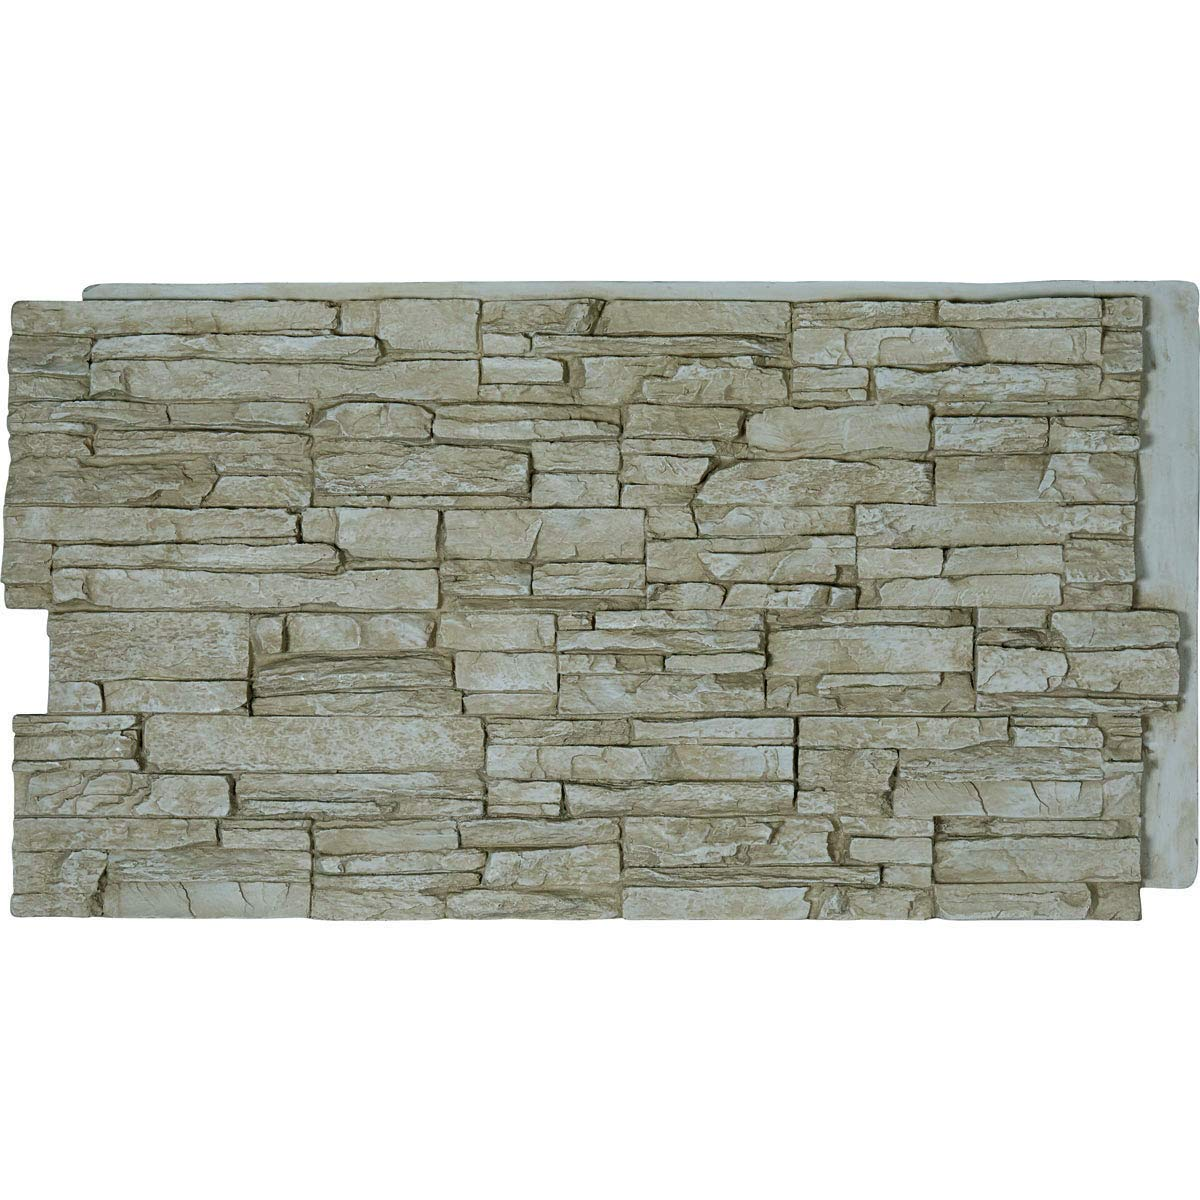 Ekena Millwork PNU24X48CNSR Canyon Ridge Stacked Stone Stonewall Faux Stone Siding Panel 48W x 24H x 1 1//4D Smokey Ridge 1 EA